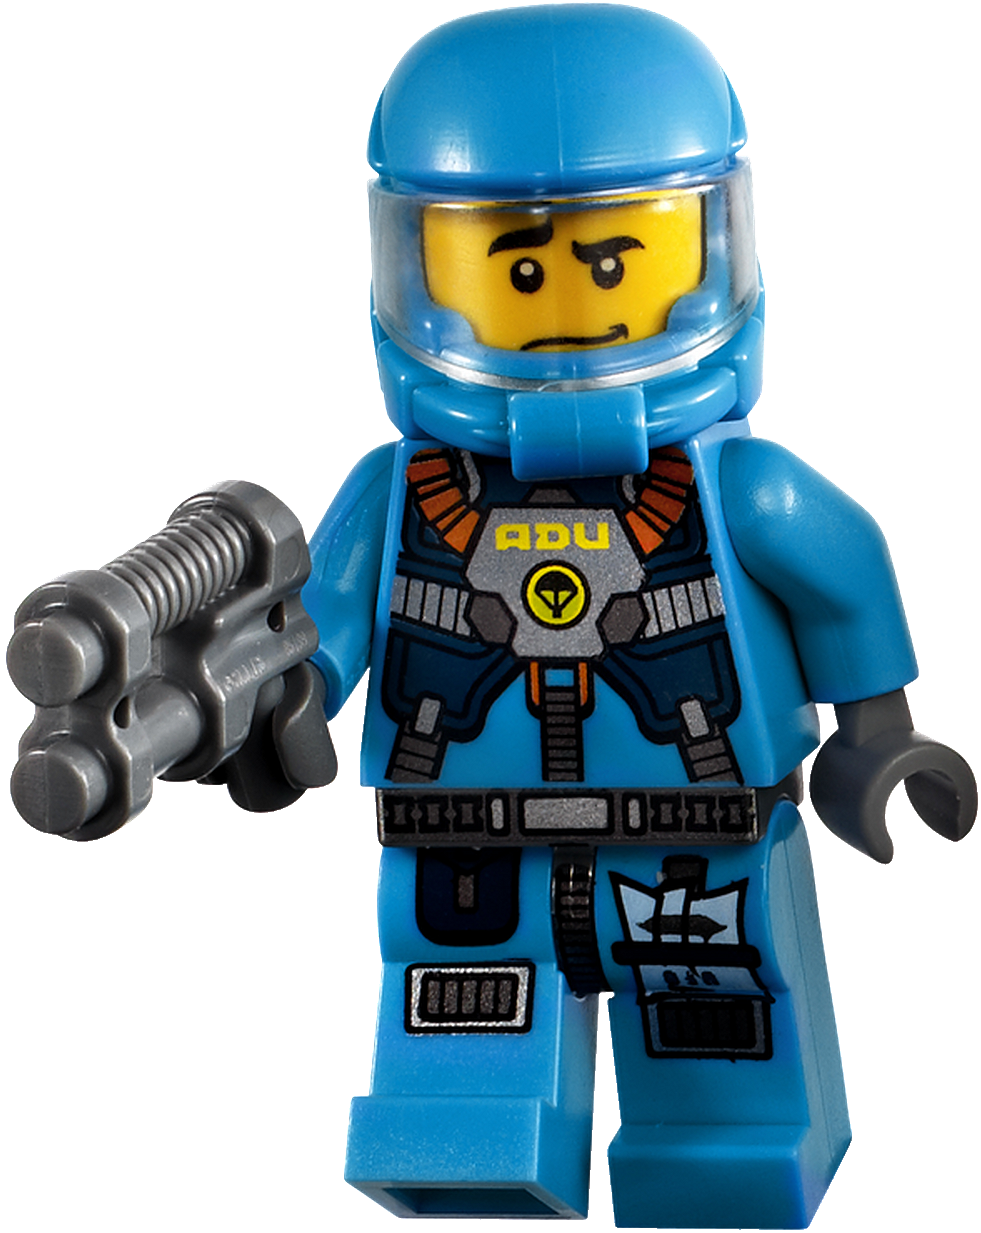 Lego people png. Movie transparent background mart